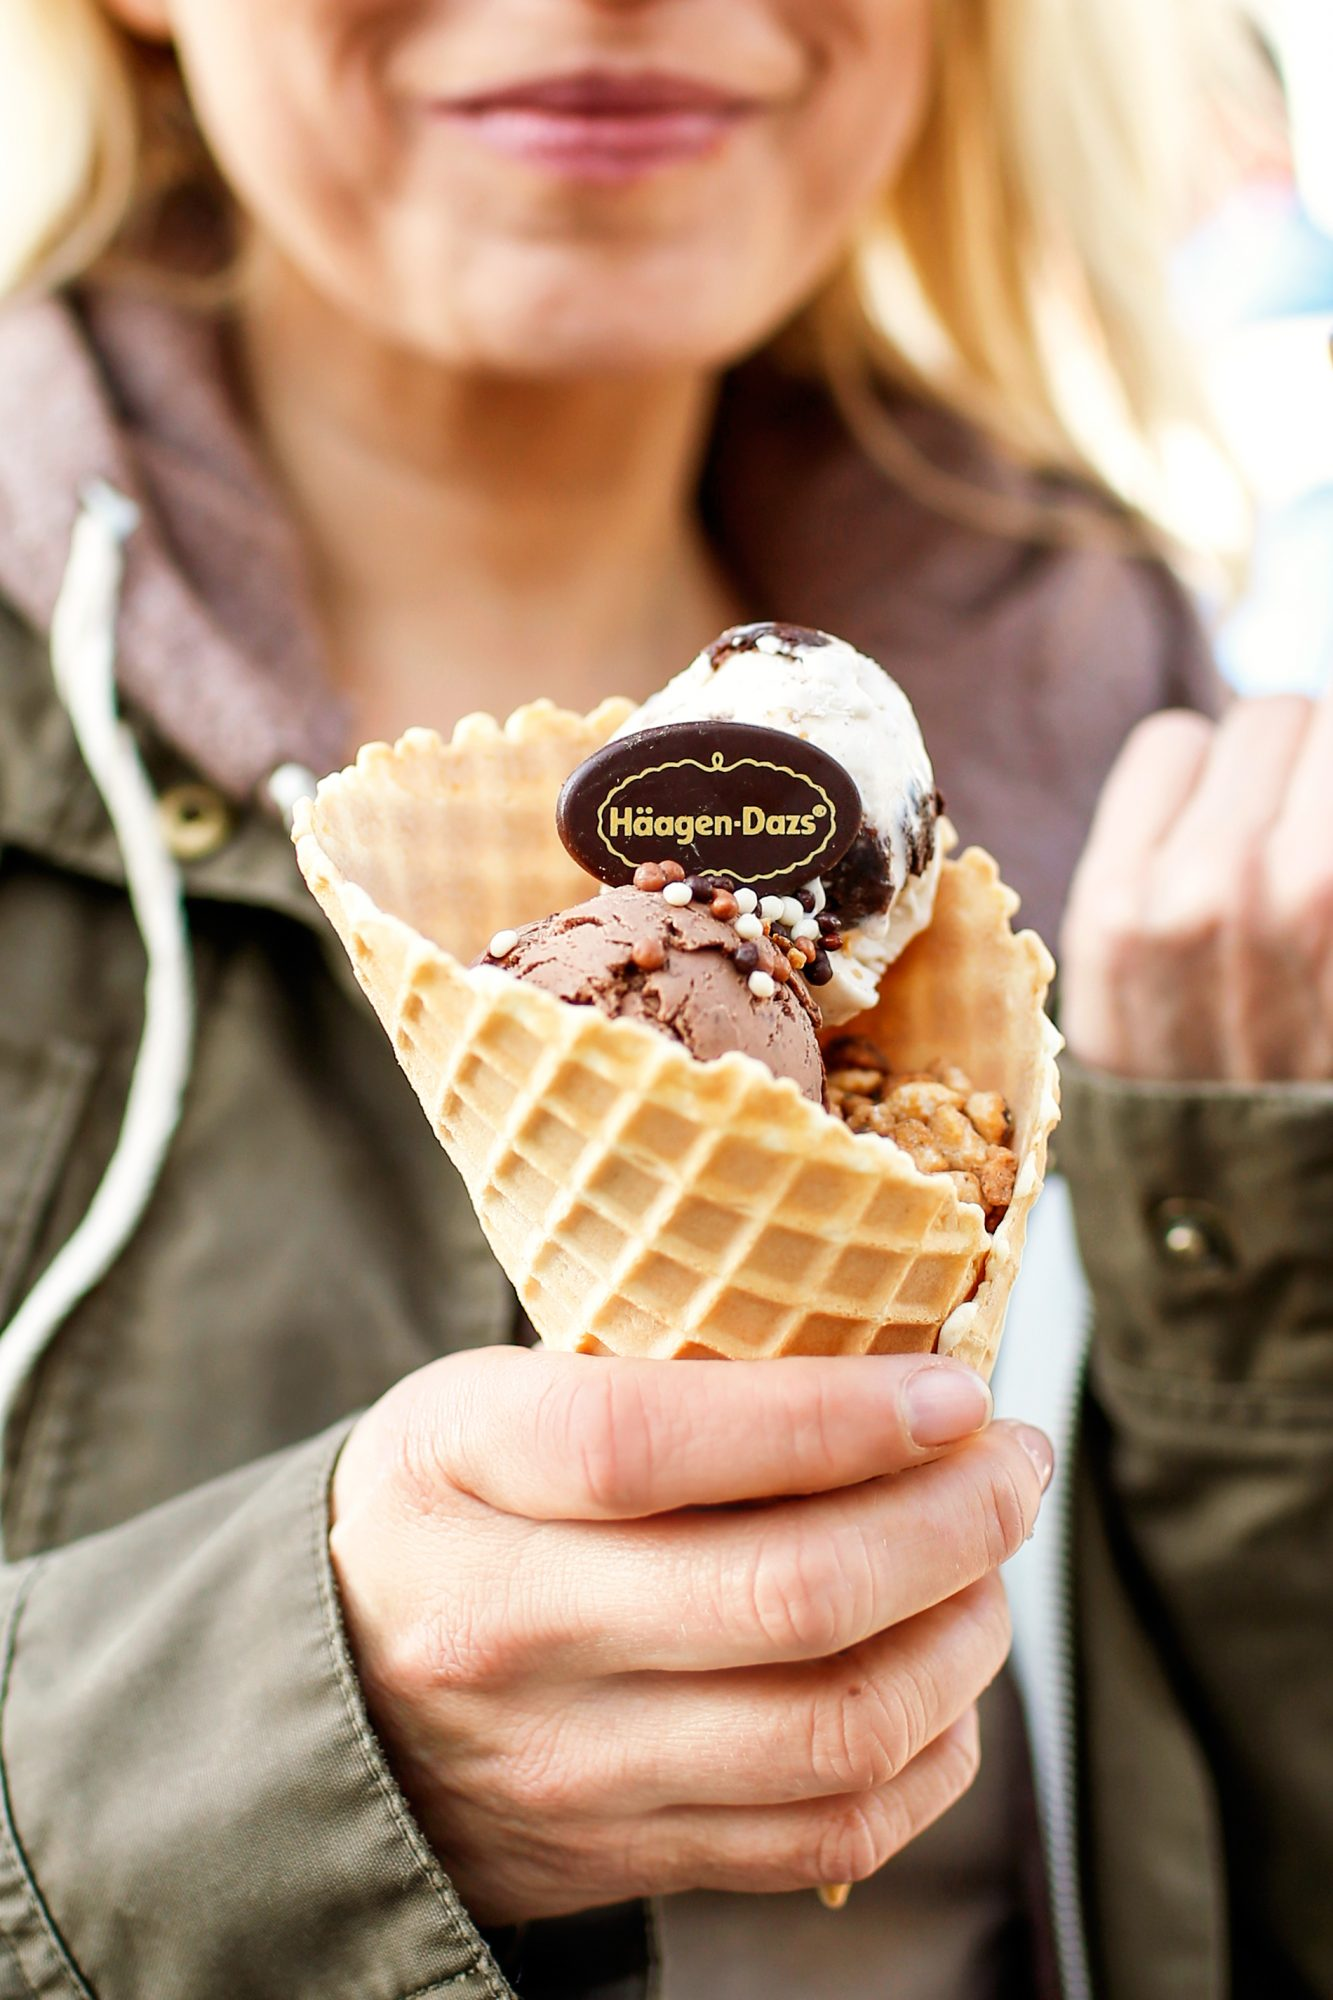 Did Someone Say Free Ice Cream? Häagen-Dazs Is Hooking You Up